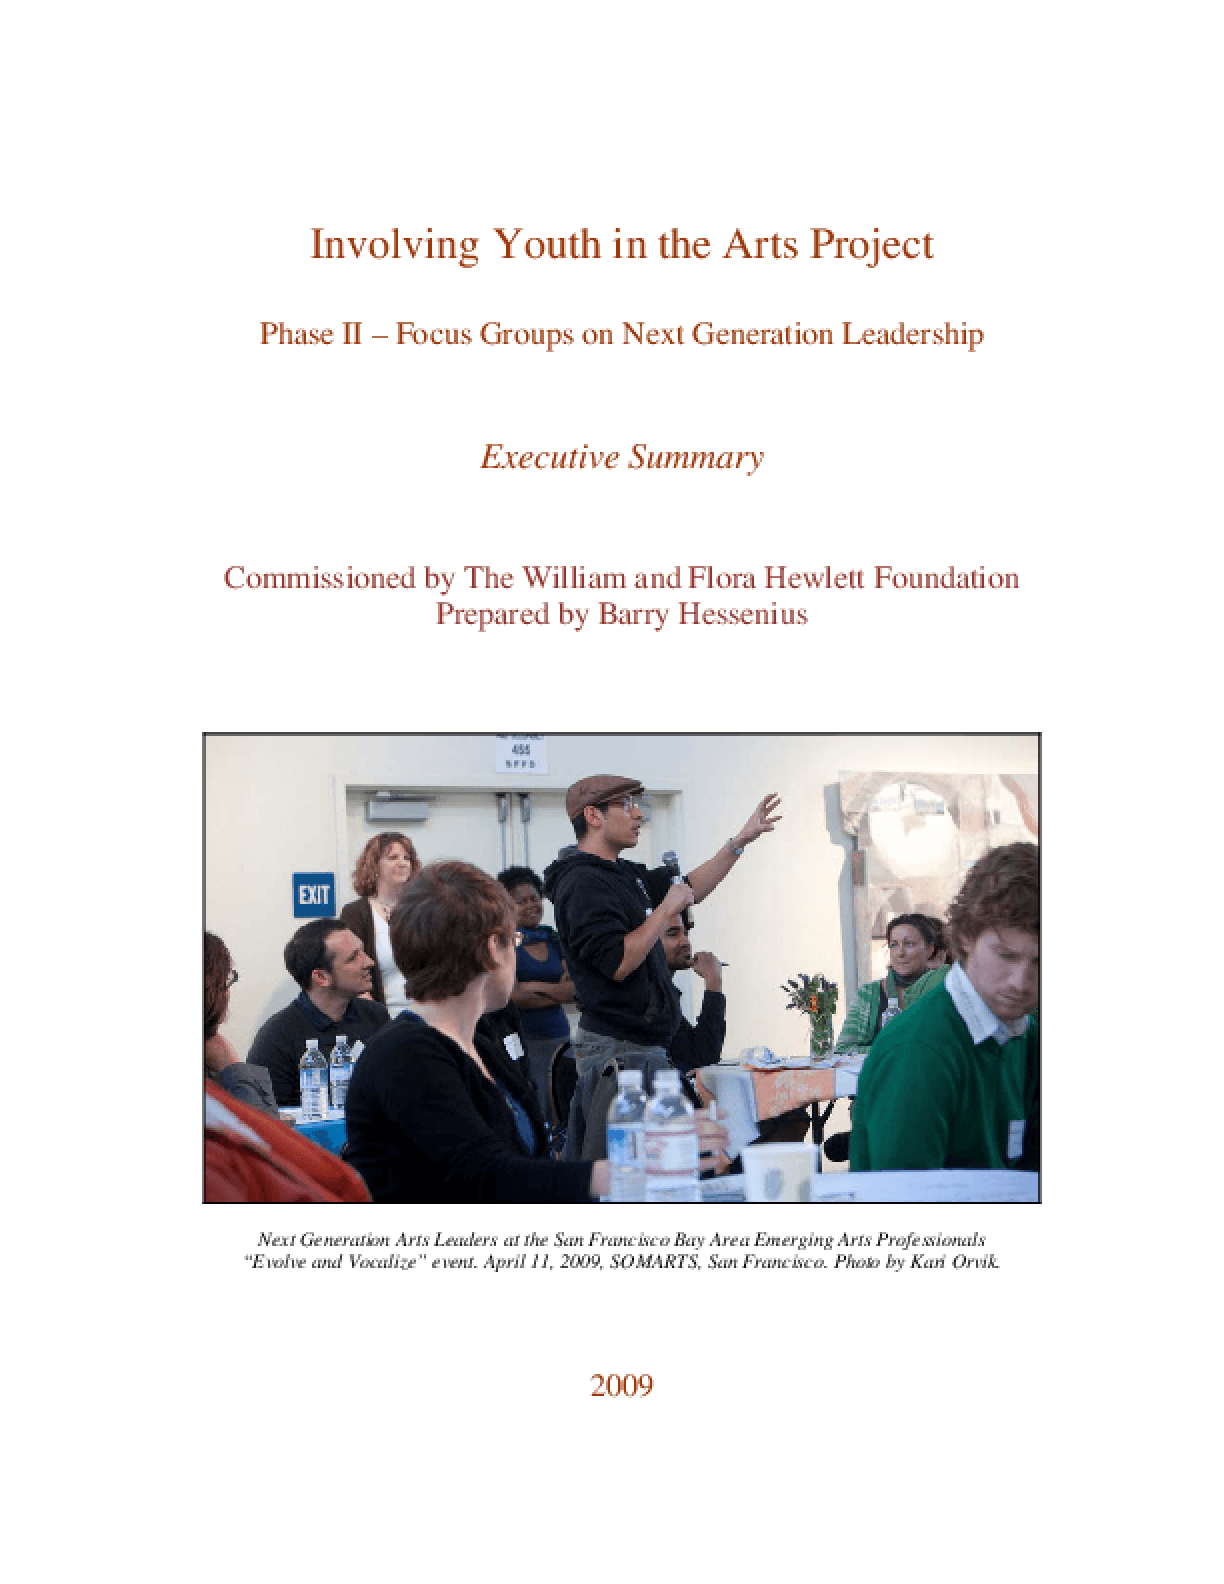 Involving Youth in the Arts Project: Phase II -- Focus Groups on Next Generation Leadership